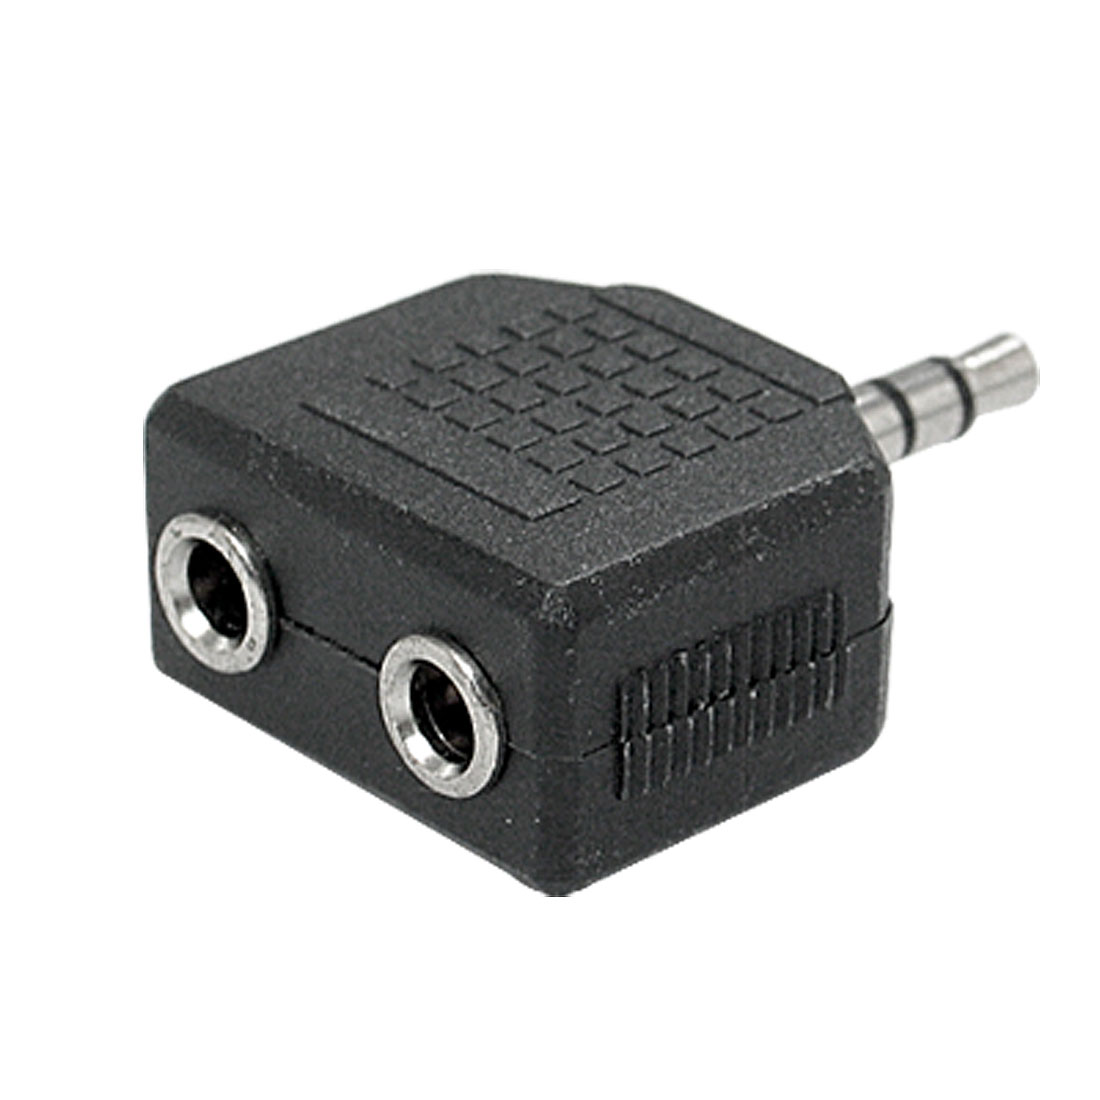 1 Male to 2 Female 3.5mm Audio Converter Connector Adapter